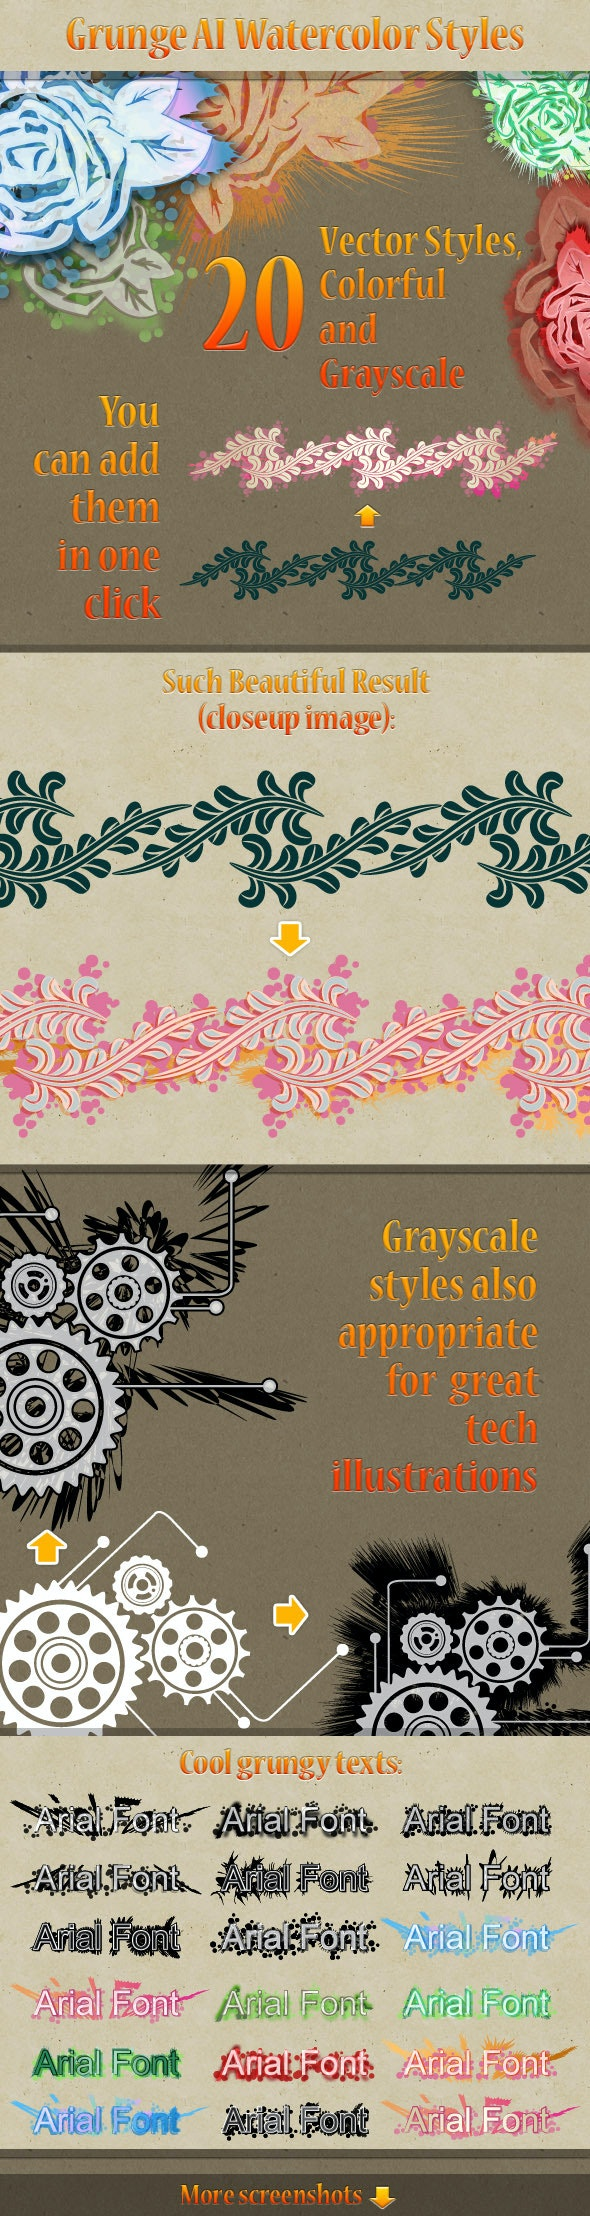 20 Grunge Watercolor Illustrator Styles - Artistic Textures / Fills / Patterns